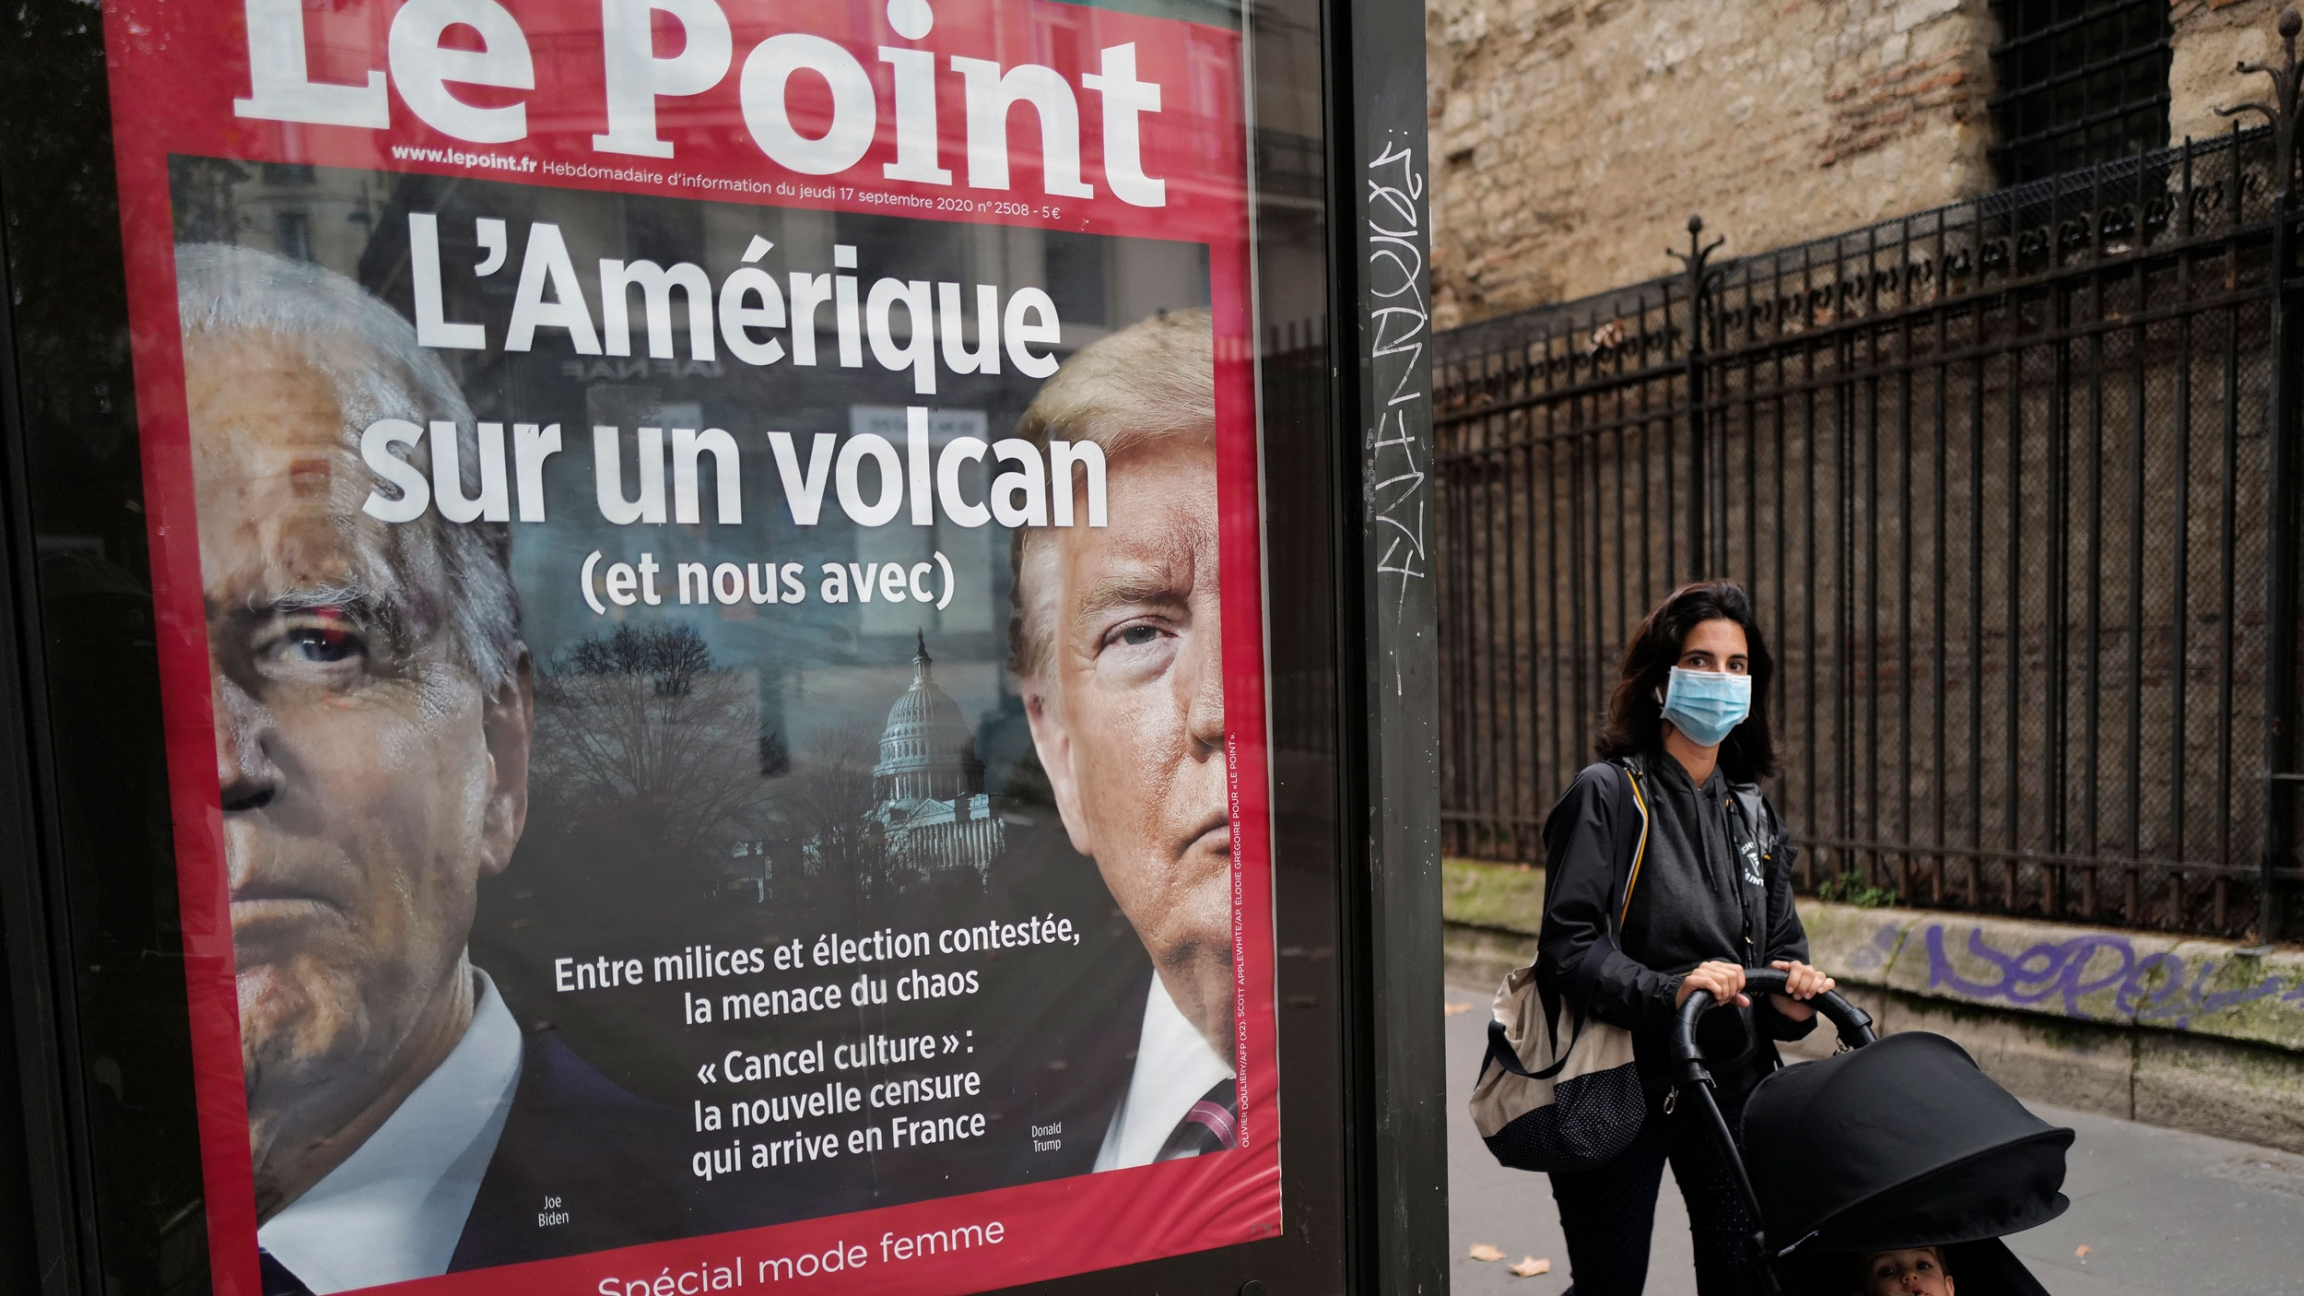 A small billboard for the French publication, Le Point, is show with the faces of Donald Trump and Joe Biden on it and a woman is shown walking past.